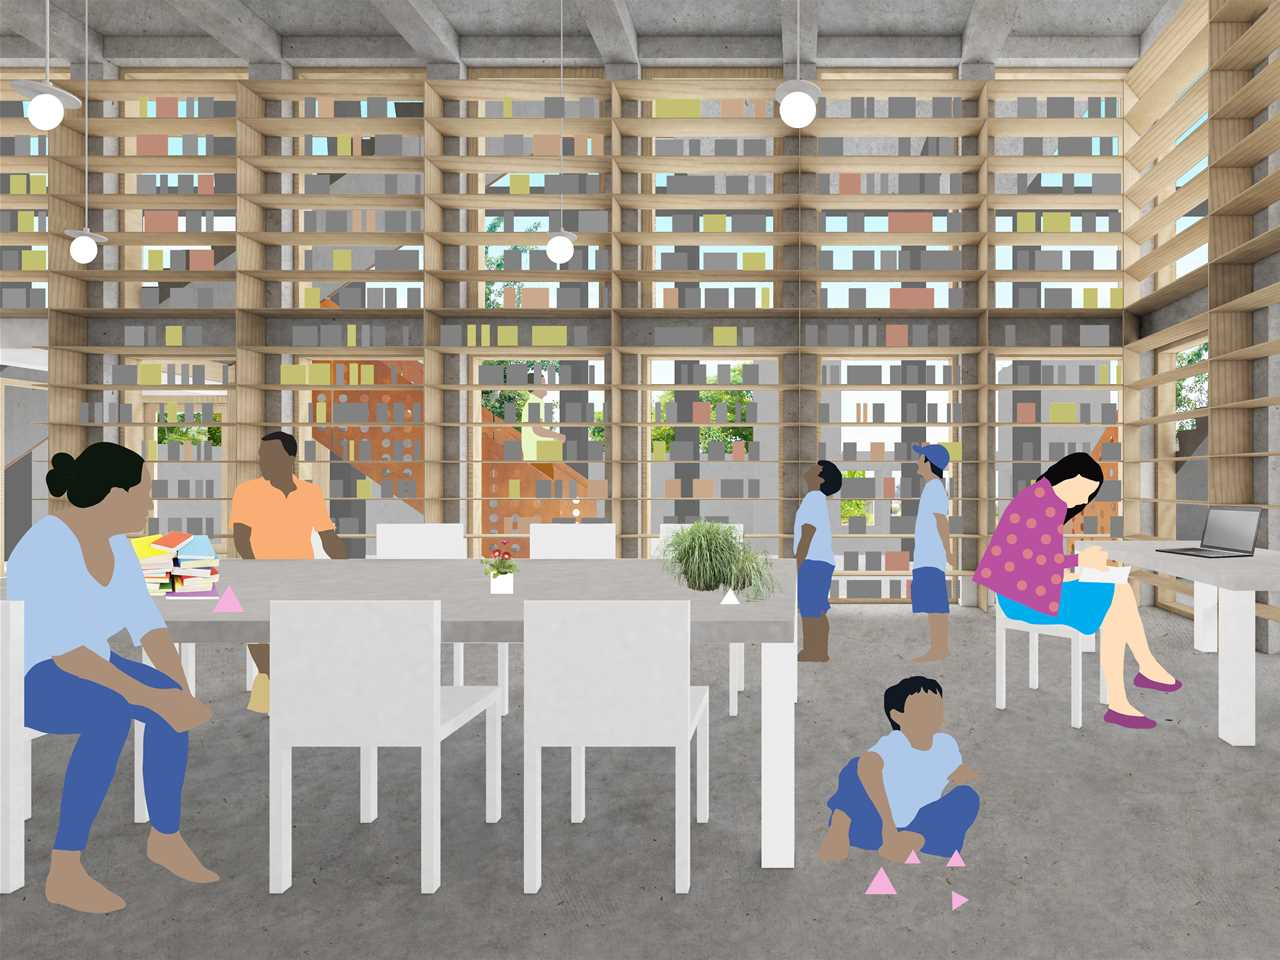 Global finalist entry 2015 - Children's Ziggurat: Locally-adapted orphanage and library